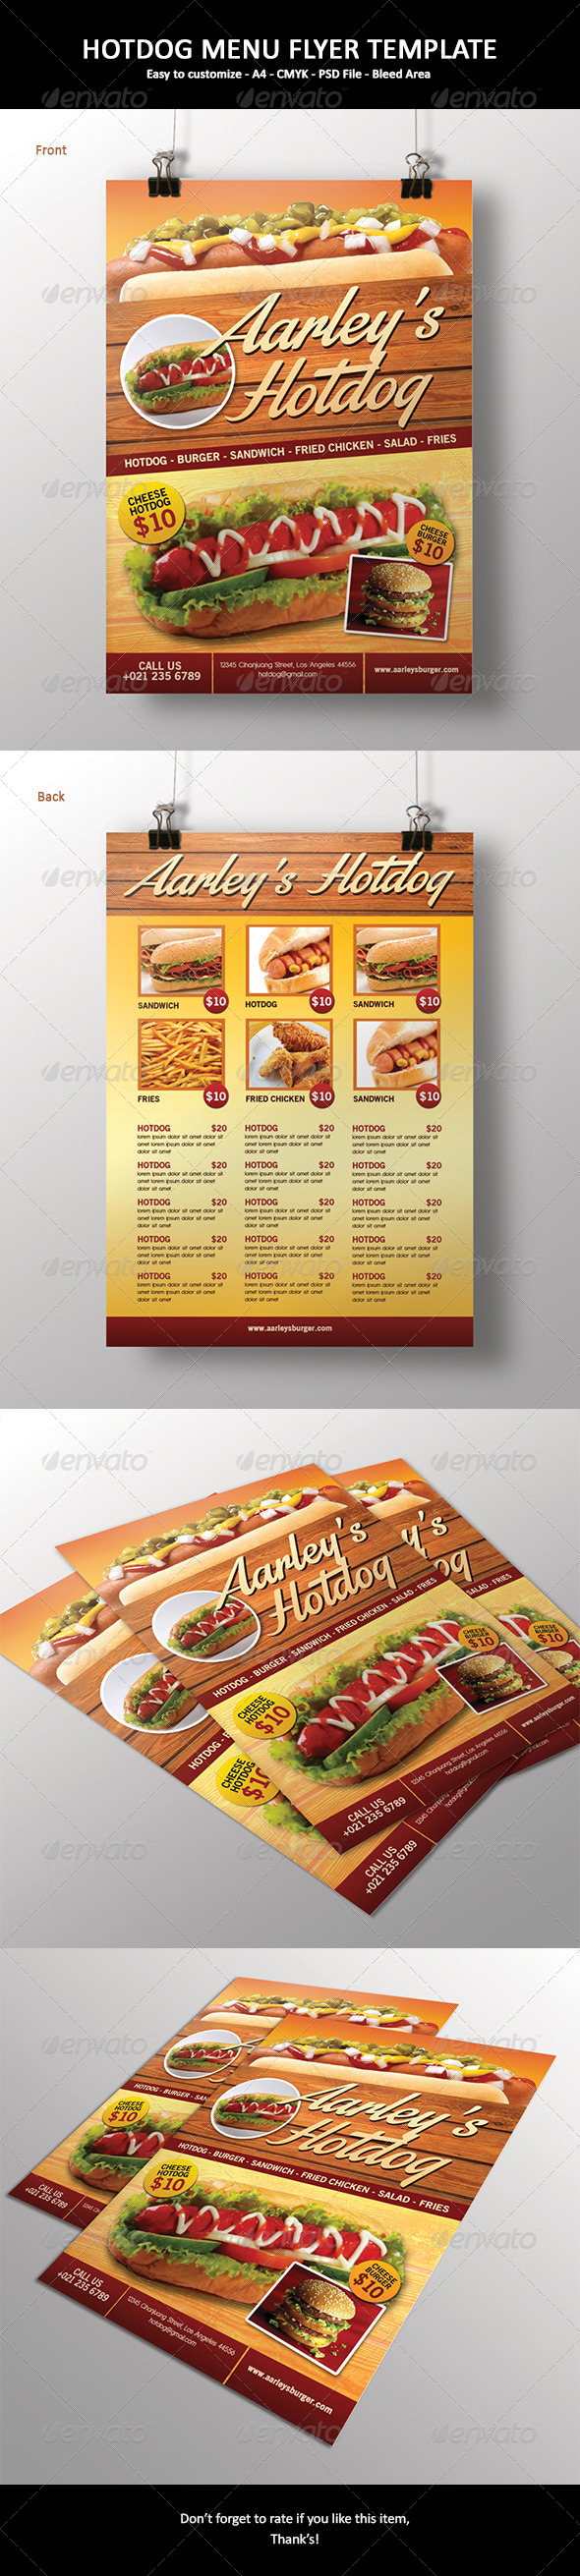 GraphicRiver Hotdog Menu Flyer 6529533 Created: 9